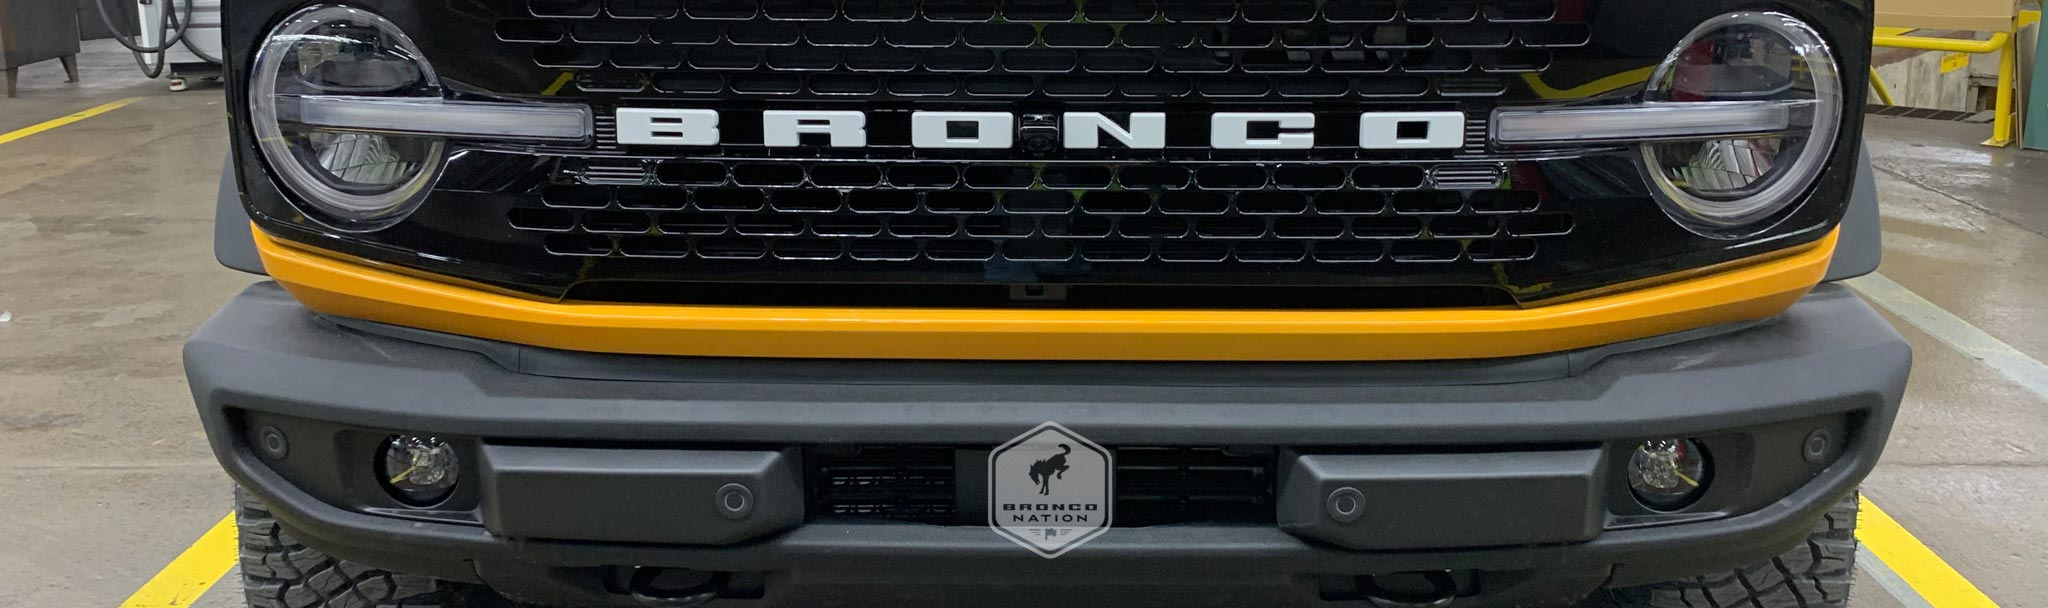 More Bronco Modularity: Fenders and Grilles